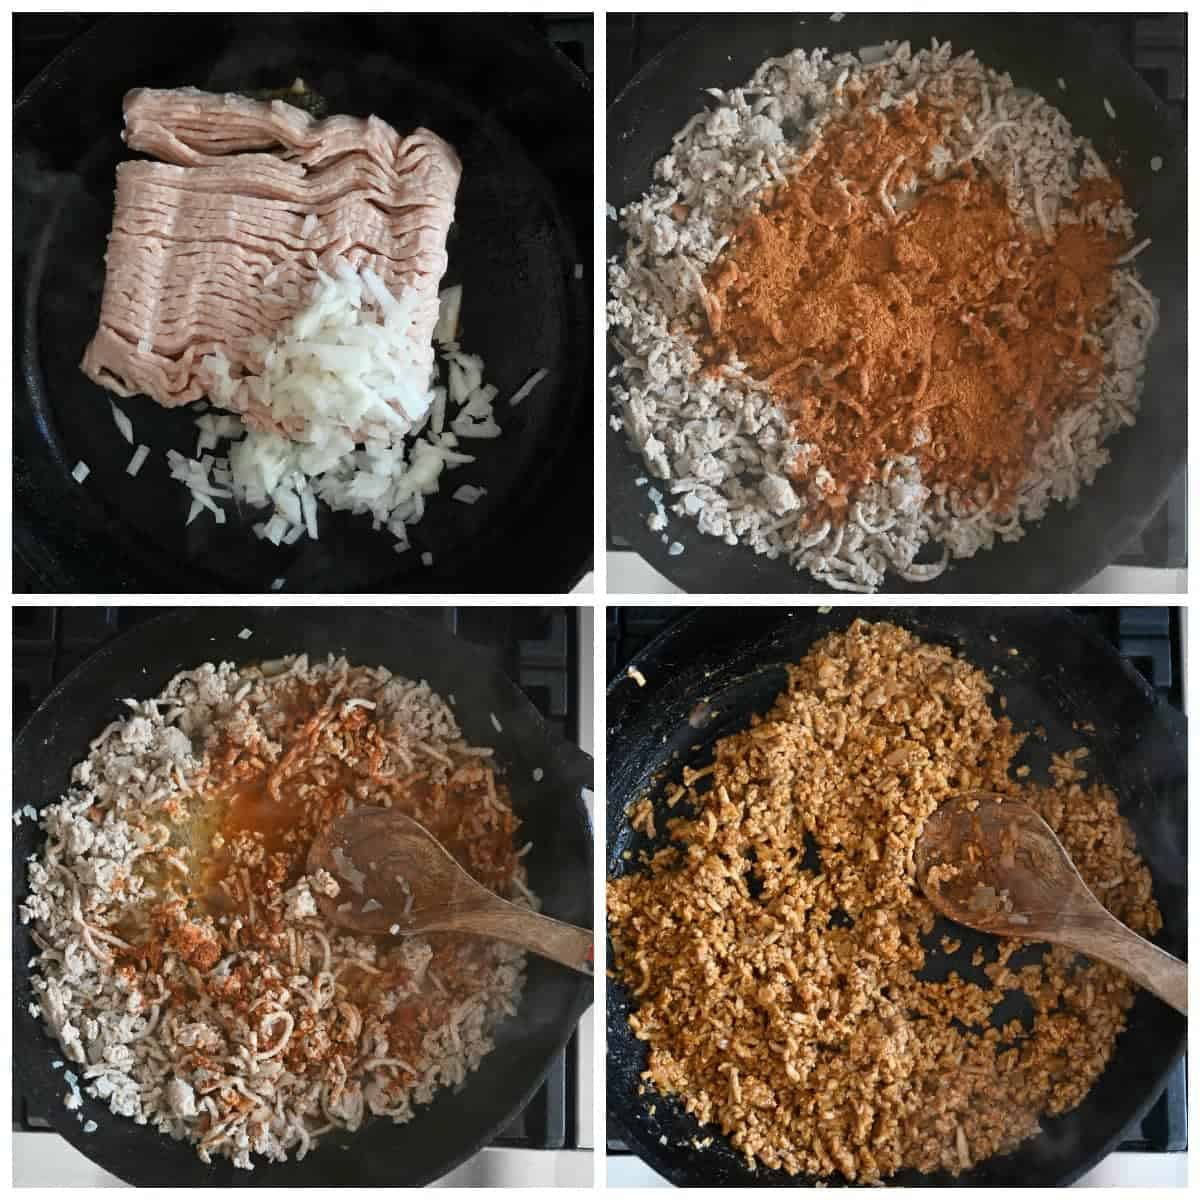 Four process photos. First one, ground chicken and diced onions placed into a cast iron pan. Second one, garlic and taco seasoning on top of the browned ground chicken. Third one, seasoning being mixed in. Fourth one, seasoning and salsa all mixed inot the ground chicken.